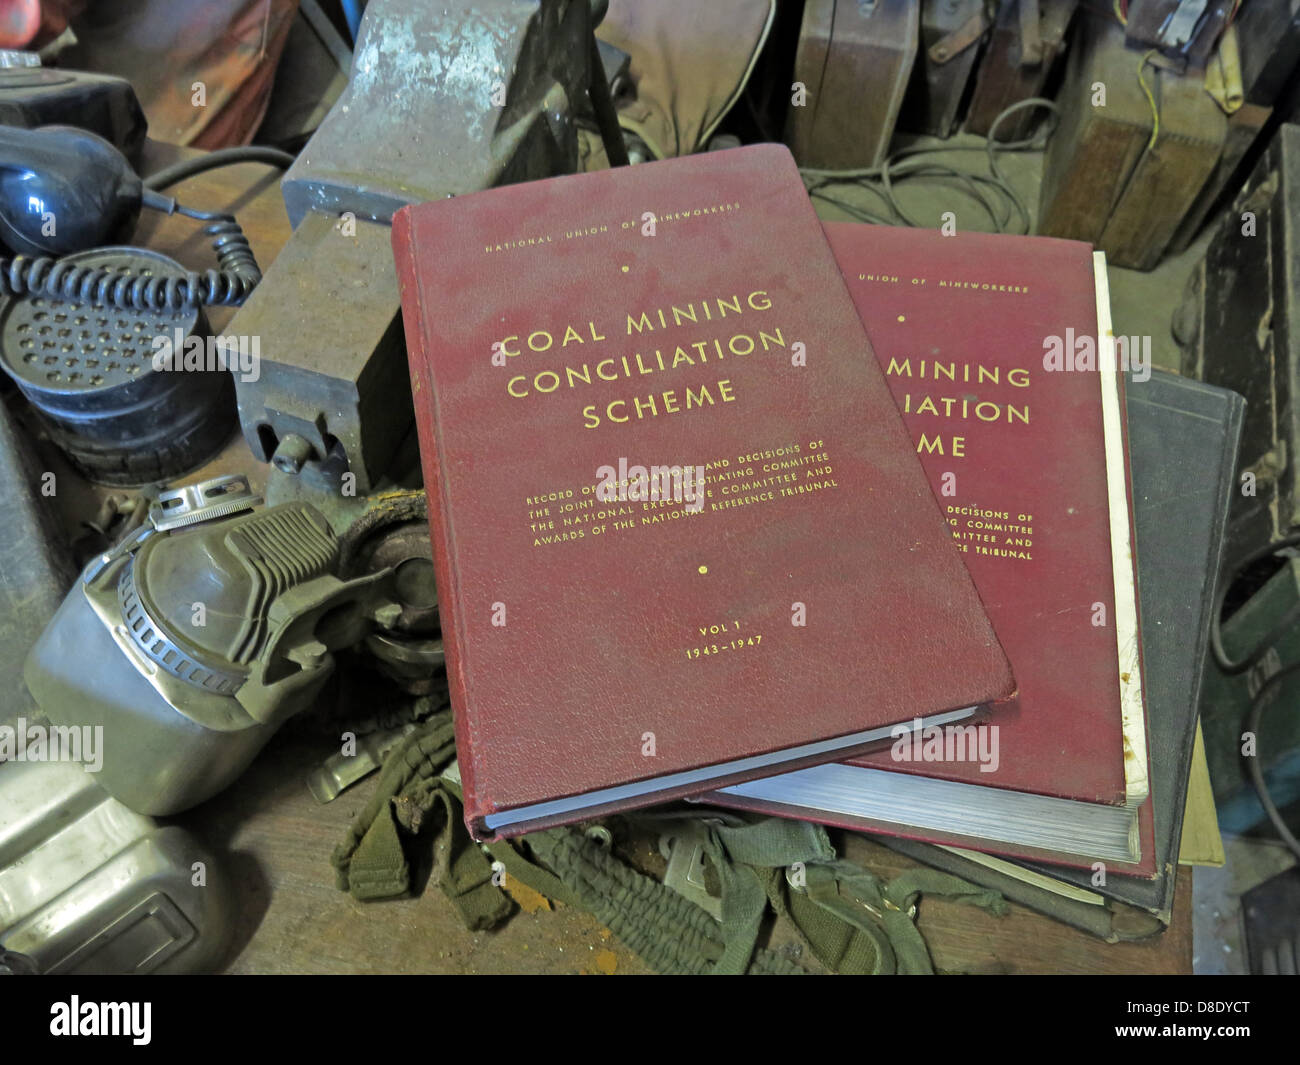 Old Maroon Coal Mining Conciliation Scheme Guides - Stock Image